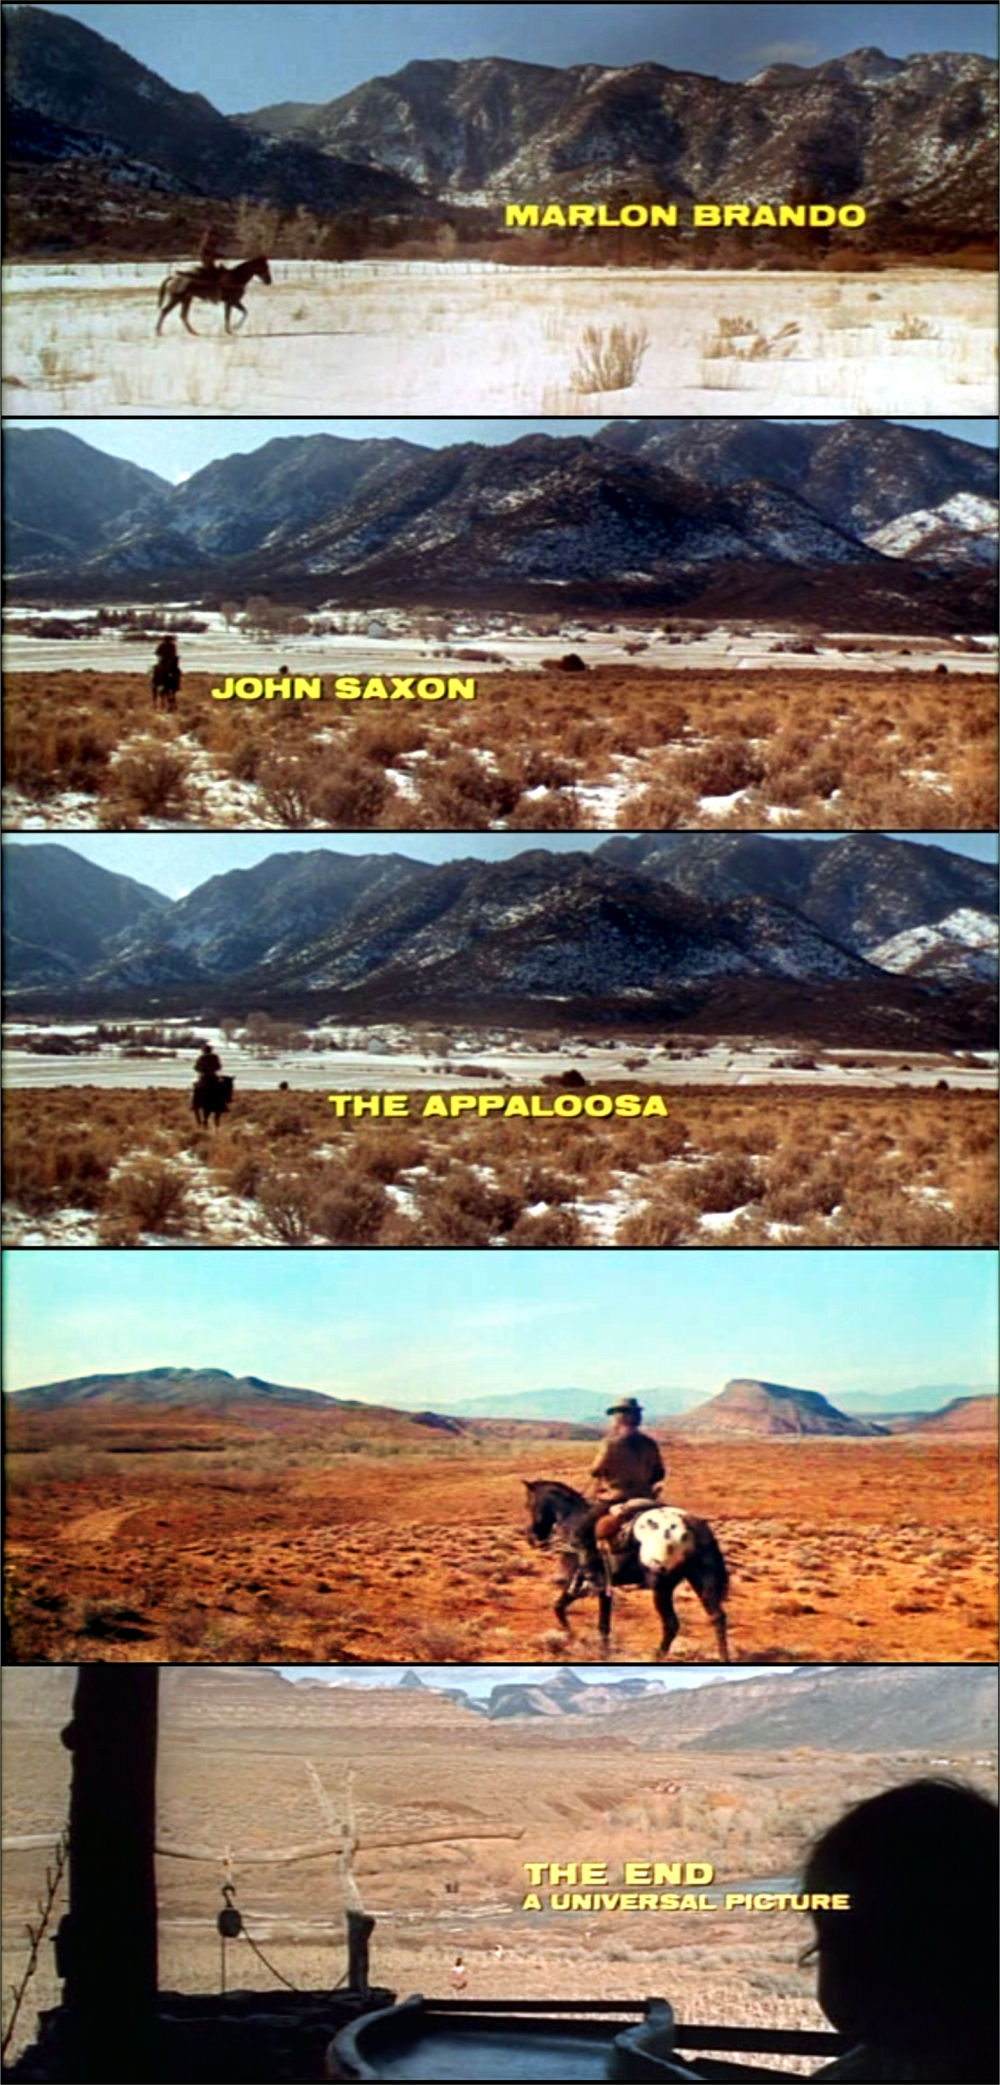 The Appaloosa Opening Screens